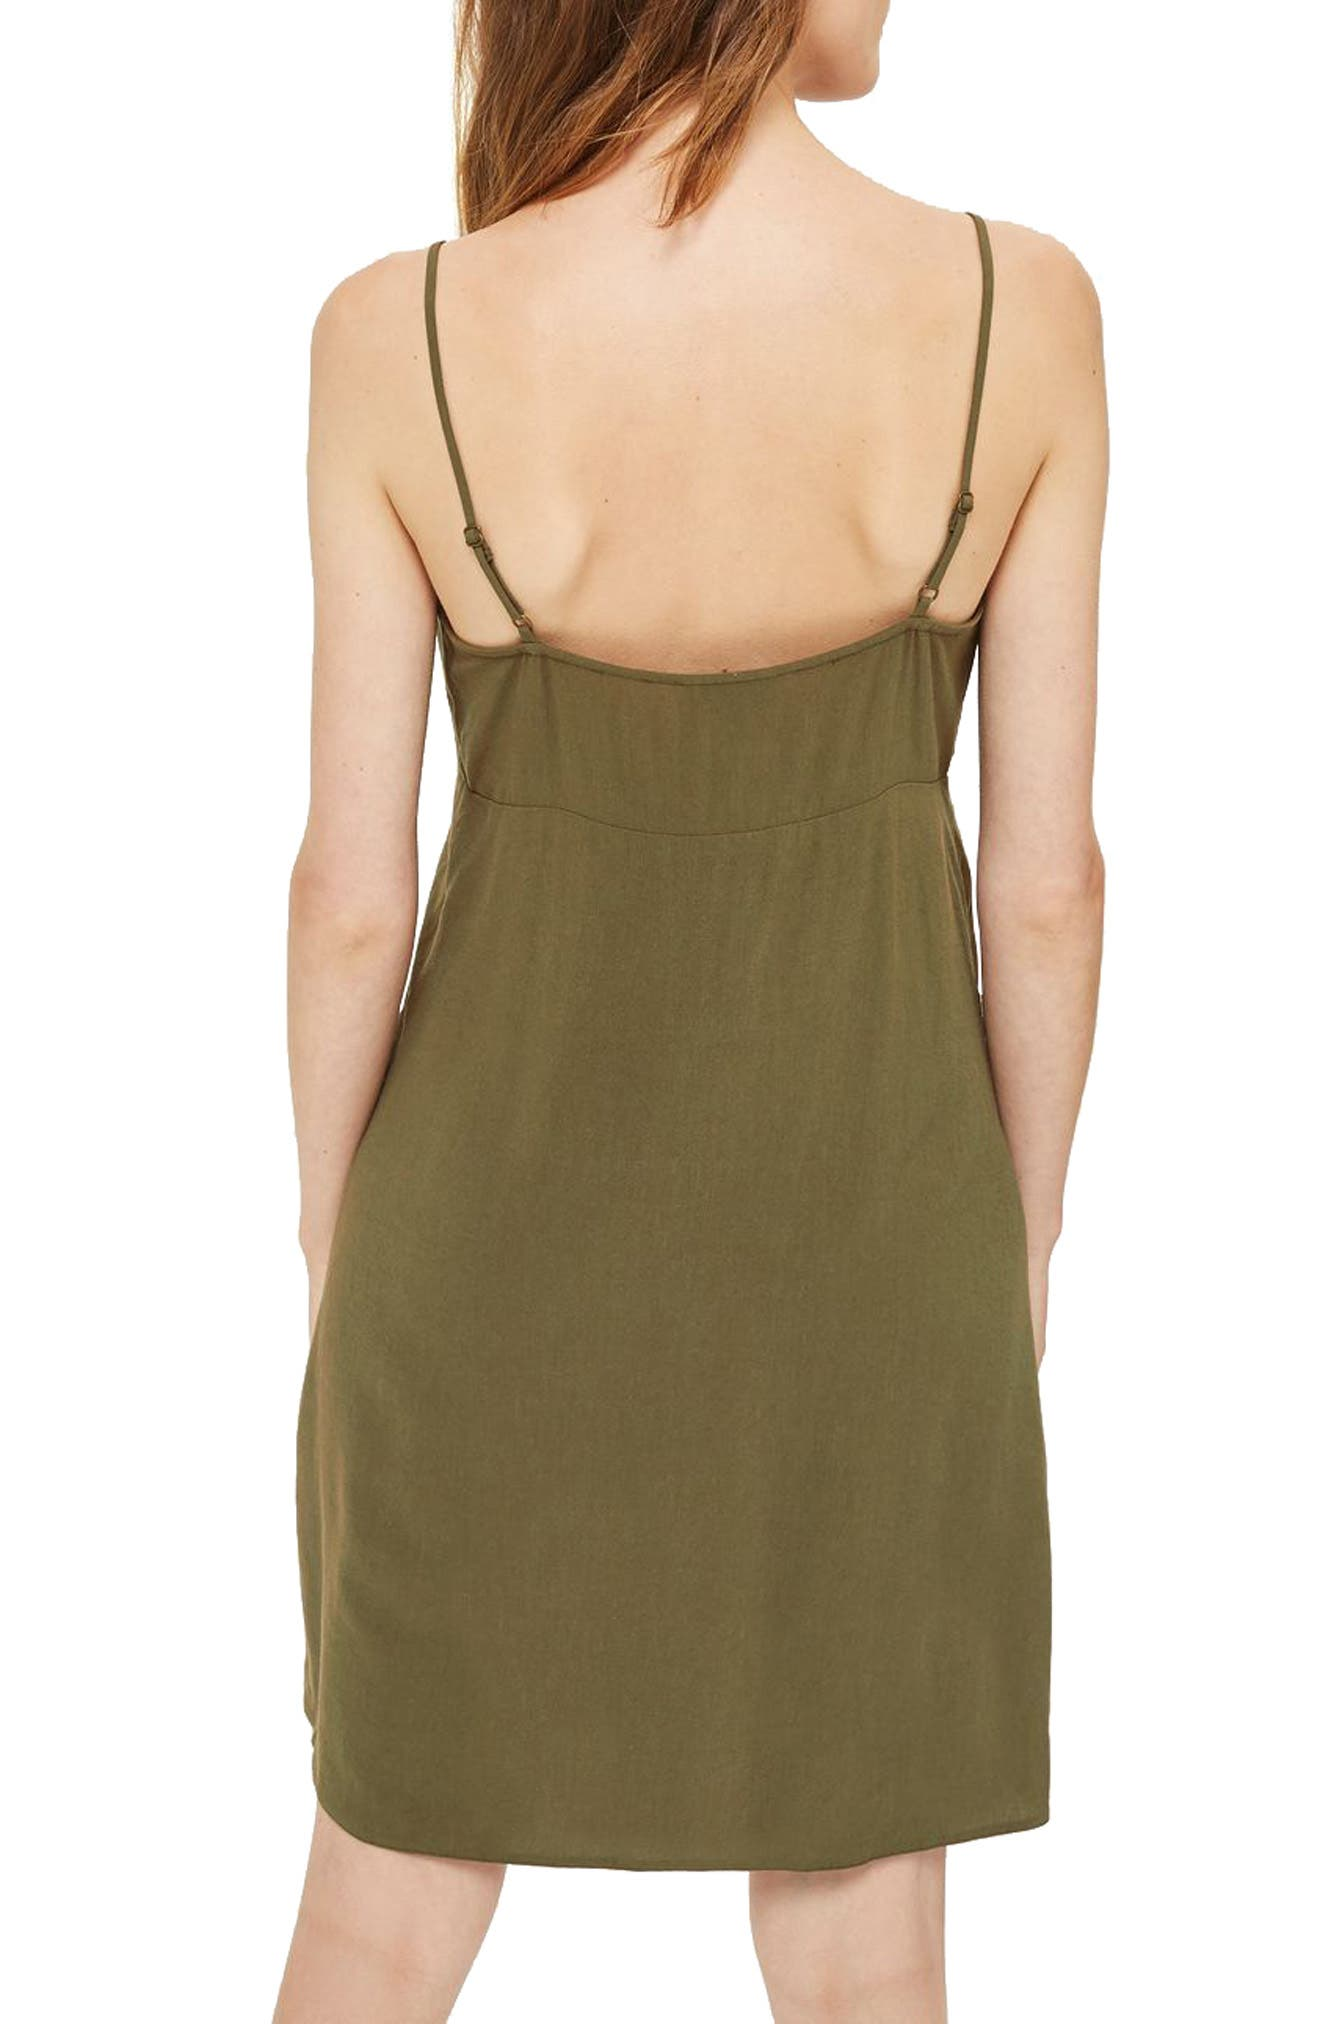 Topshop womens maternity wear nordstrom ombrellifo Choice Image